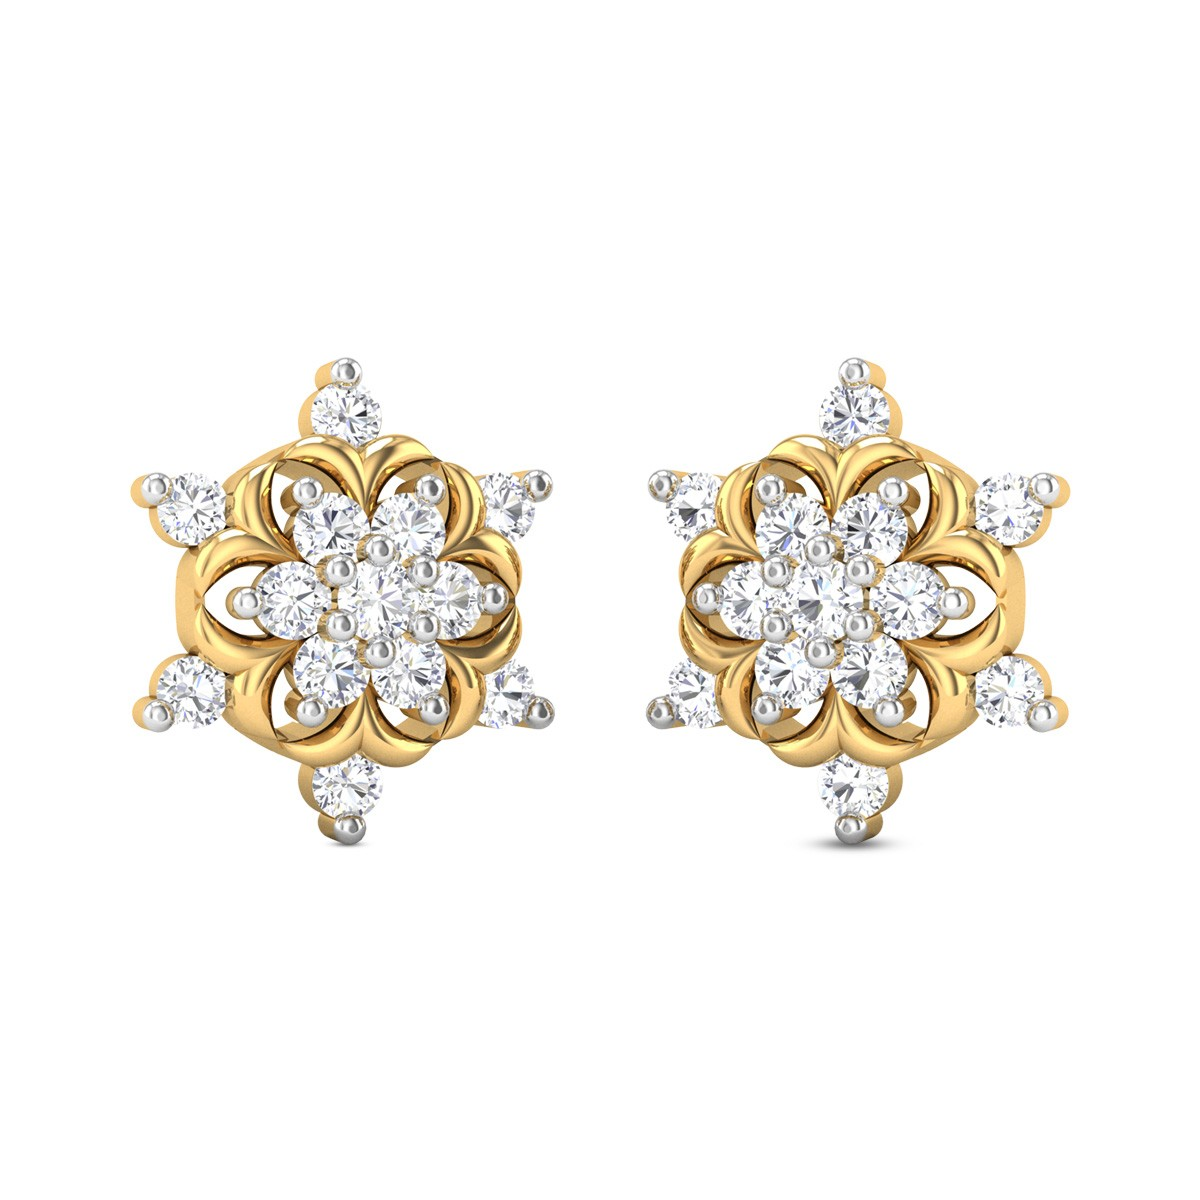 Caroline Diamond Earrings